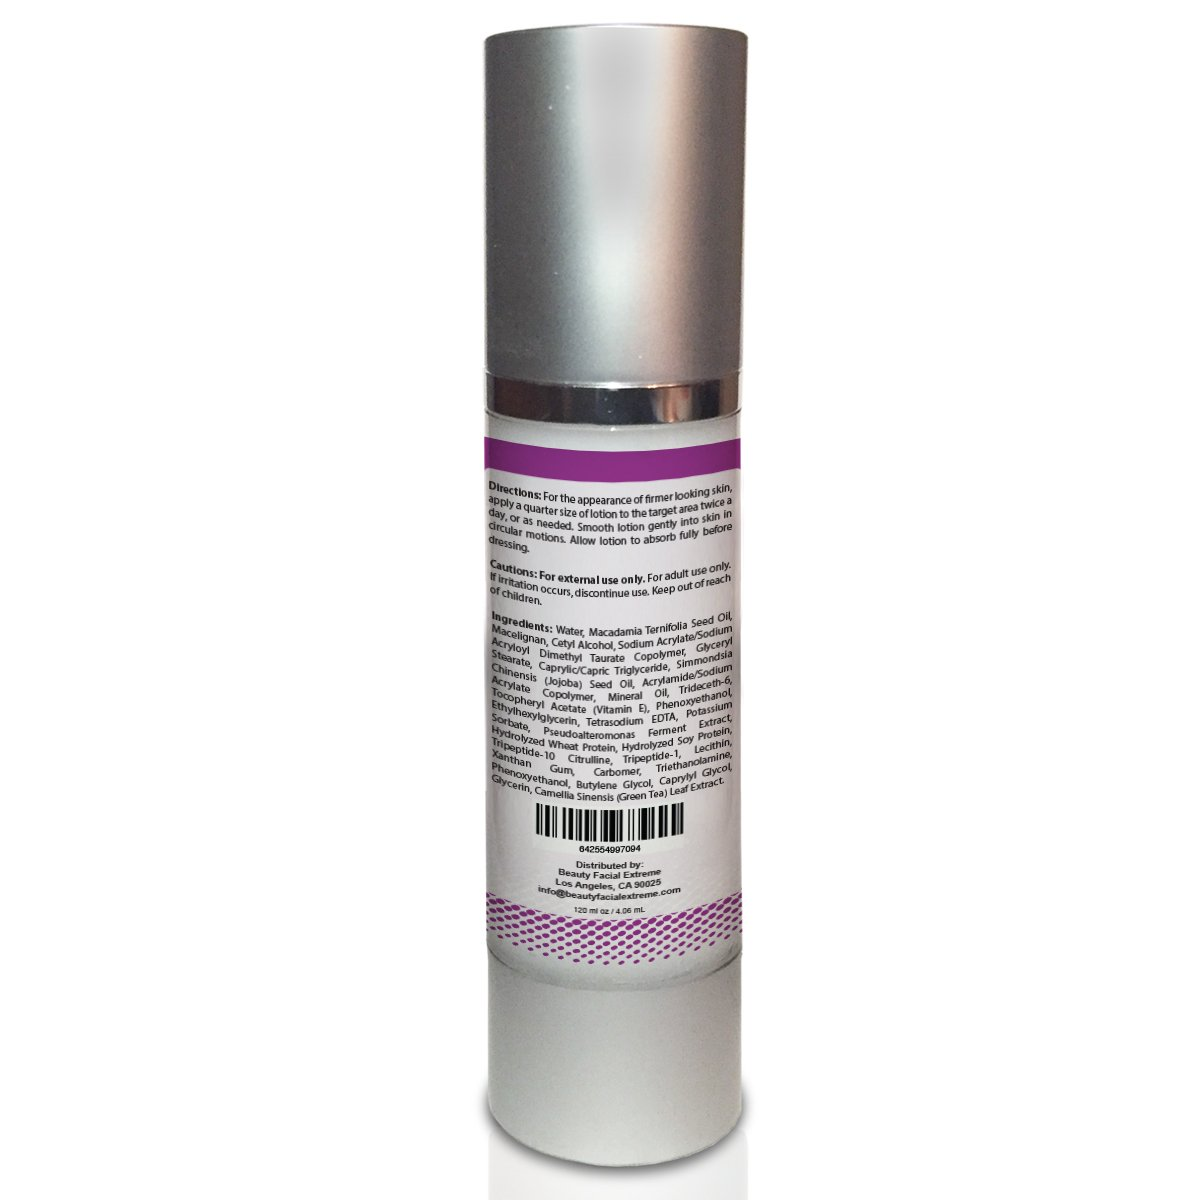 Amazon.com : Breast Enhancement & Enlargement Cream- Clinically Proven for  Bigger, Fuller Breasts. Firms, Plumps & Lifts your Boobs.